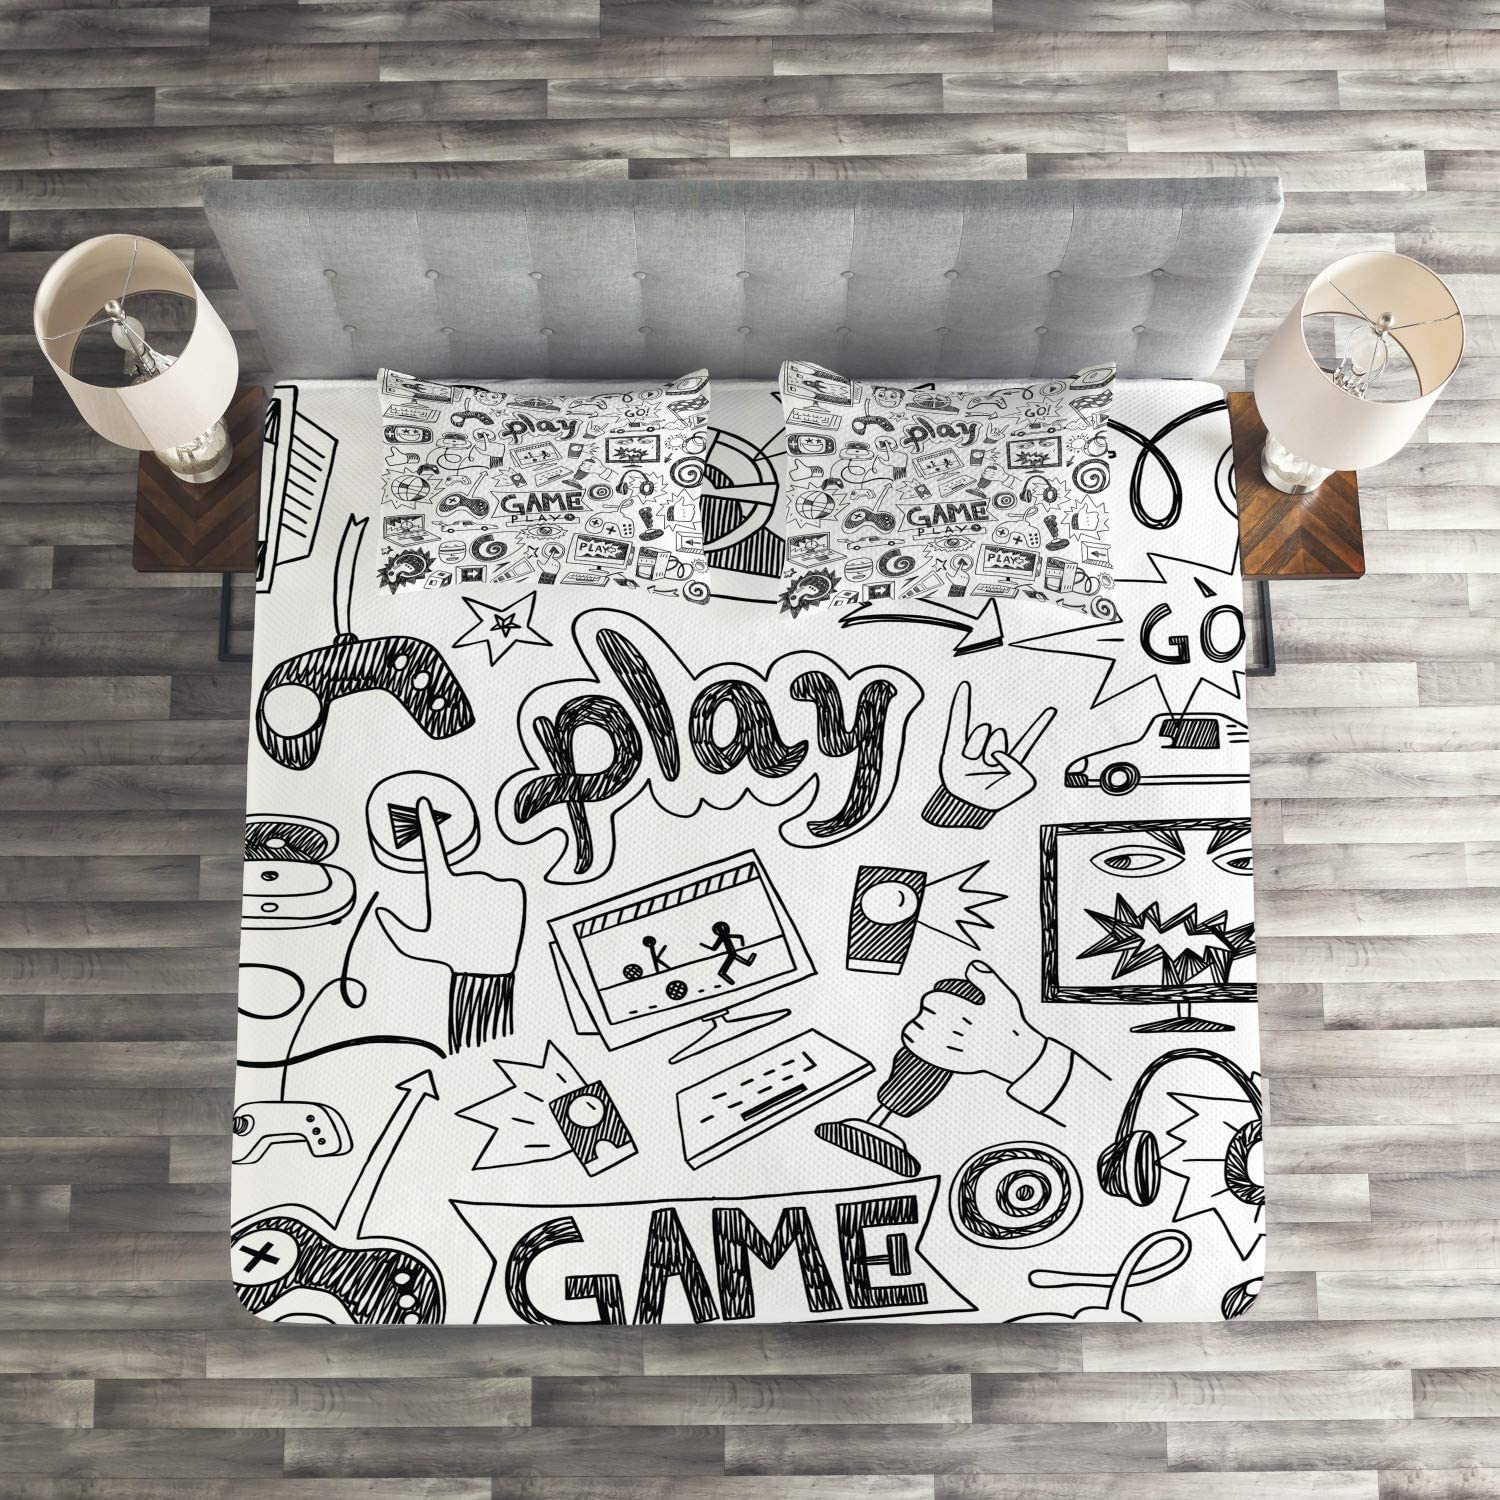 Monochrome Sketch Style Gaming Design Racing Monitor Device Gadget Teen 90s Twin Size Ambesonne Video Games Flat Sheet Black White Soft Comfortable Top Sheet Decorative Bedding 1 Piece